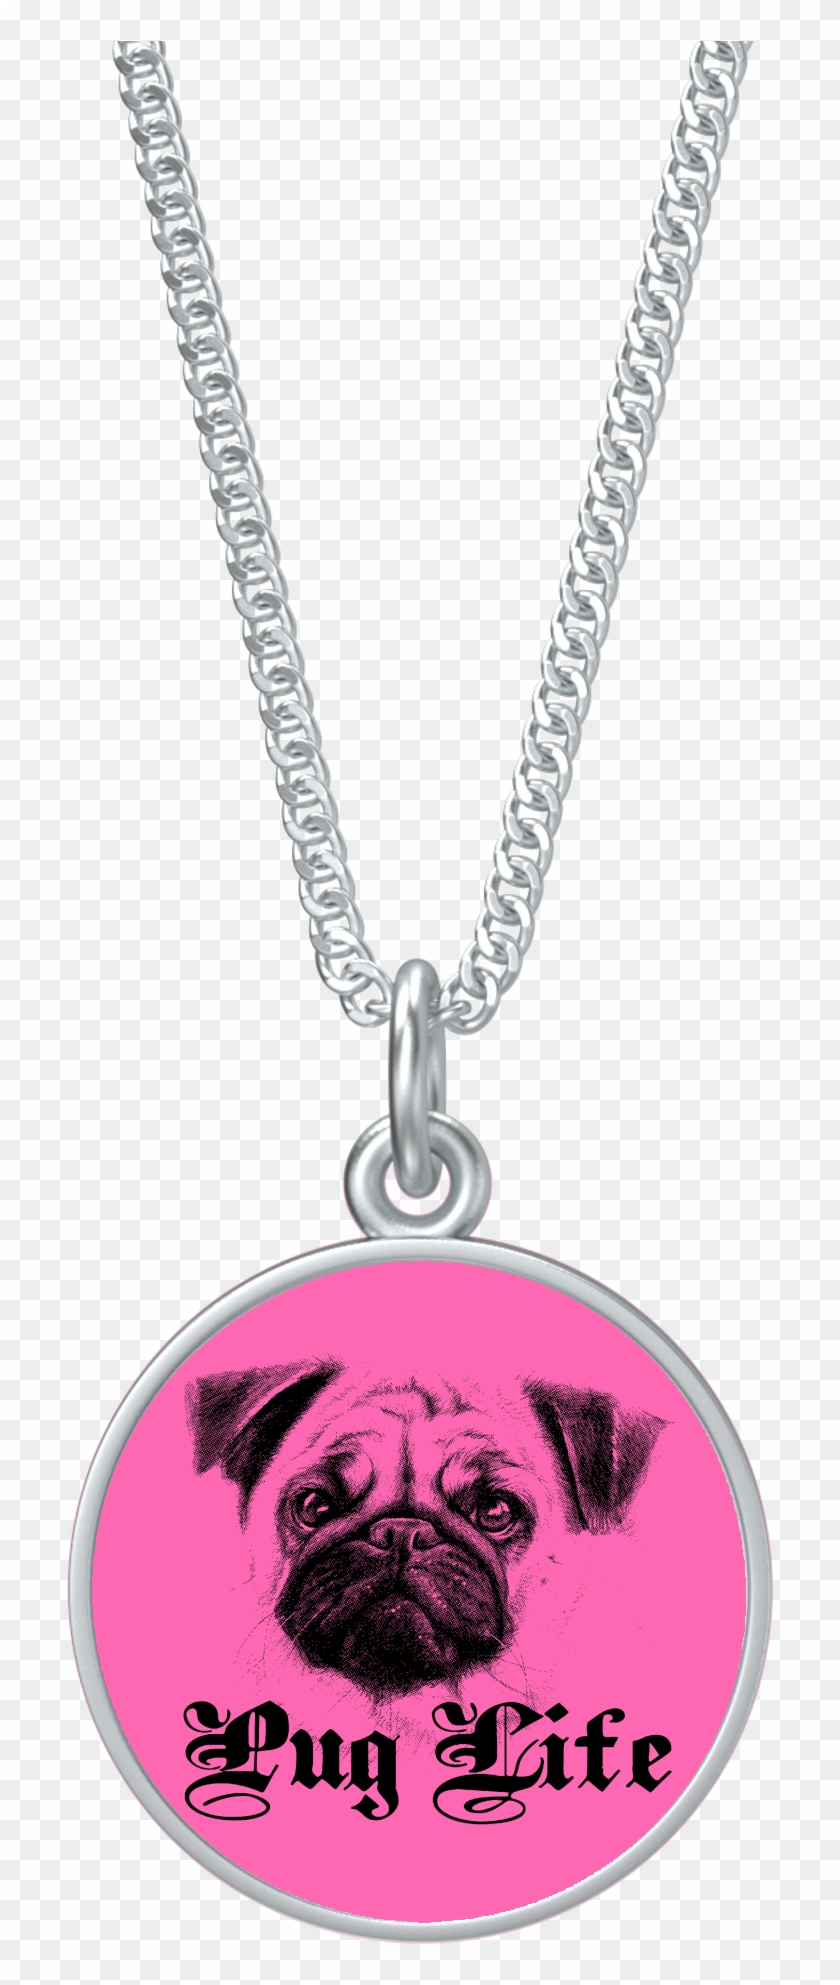 Beautiful Pug Life Necklace For Pug Dog Owners - Necklace Clipart #3515669